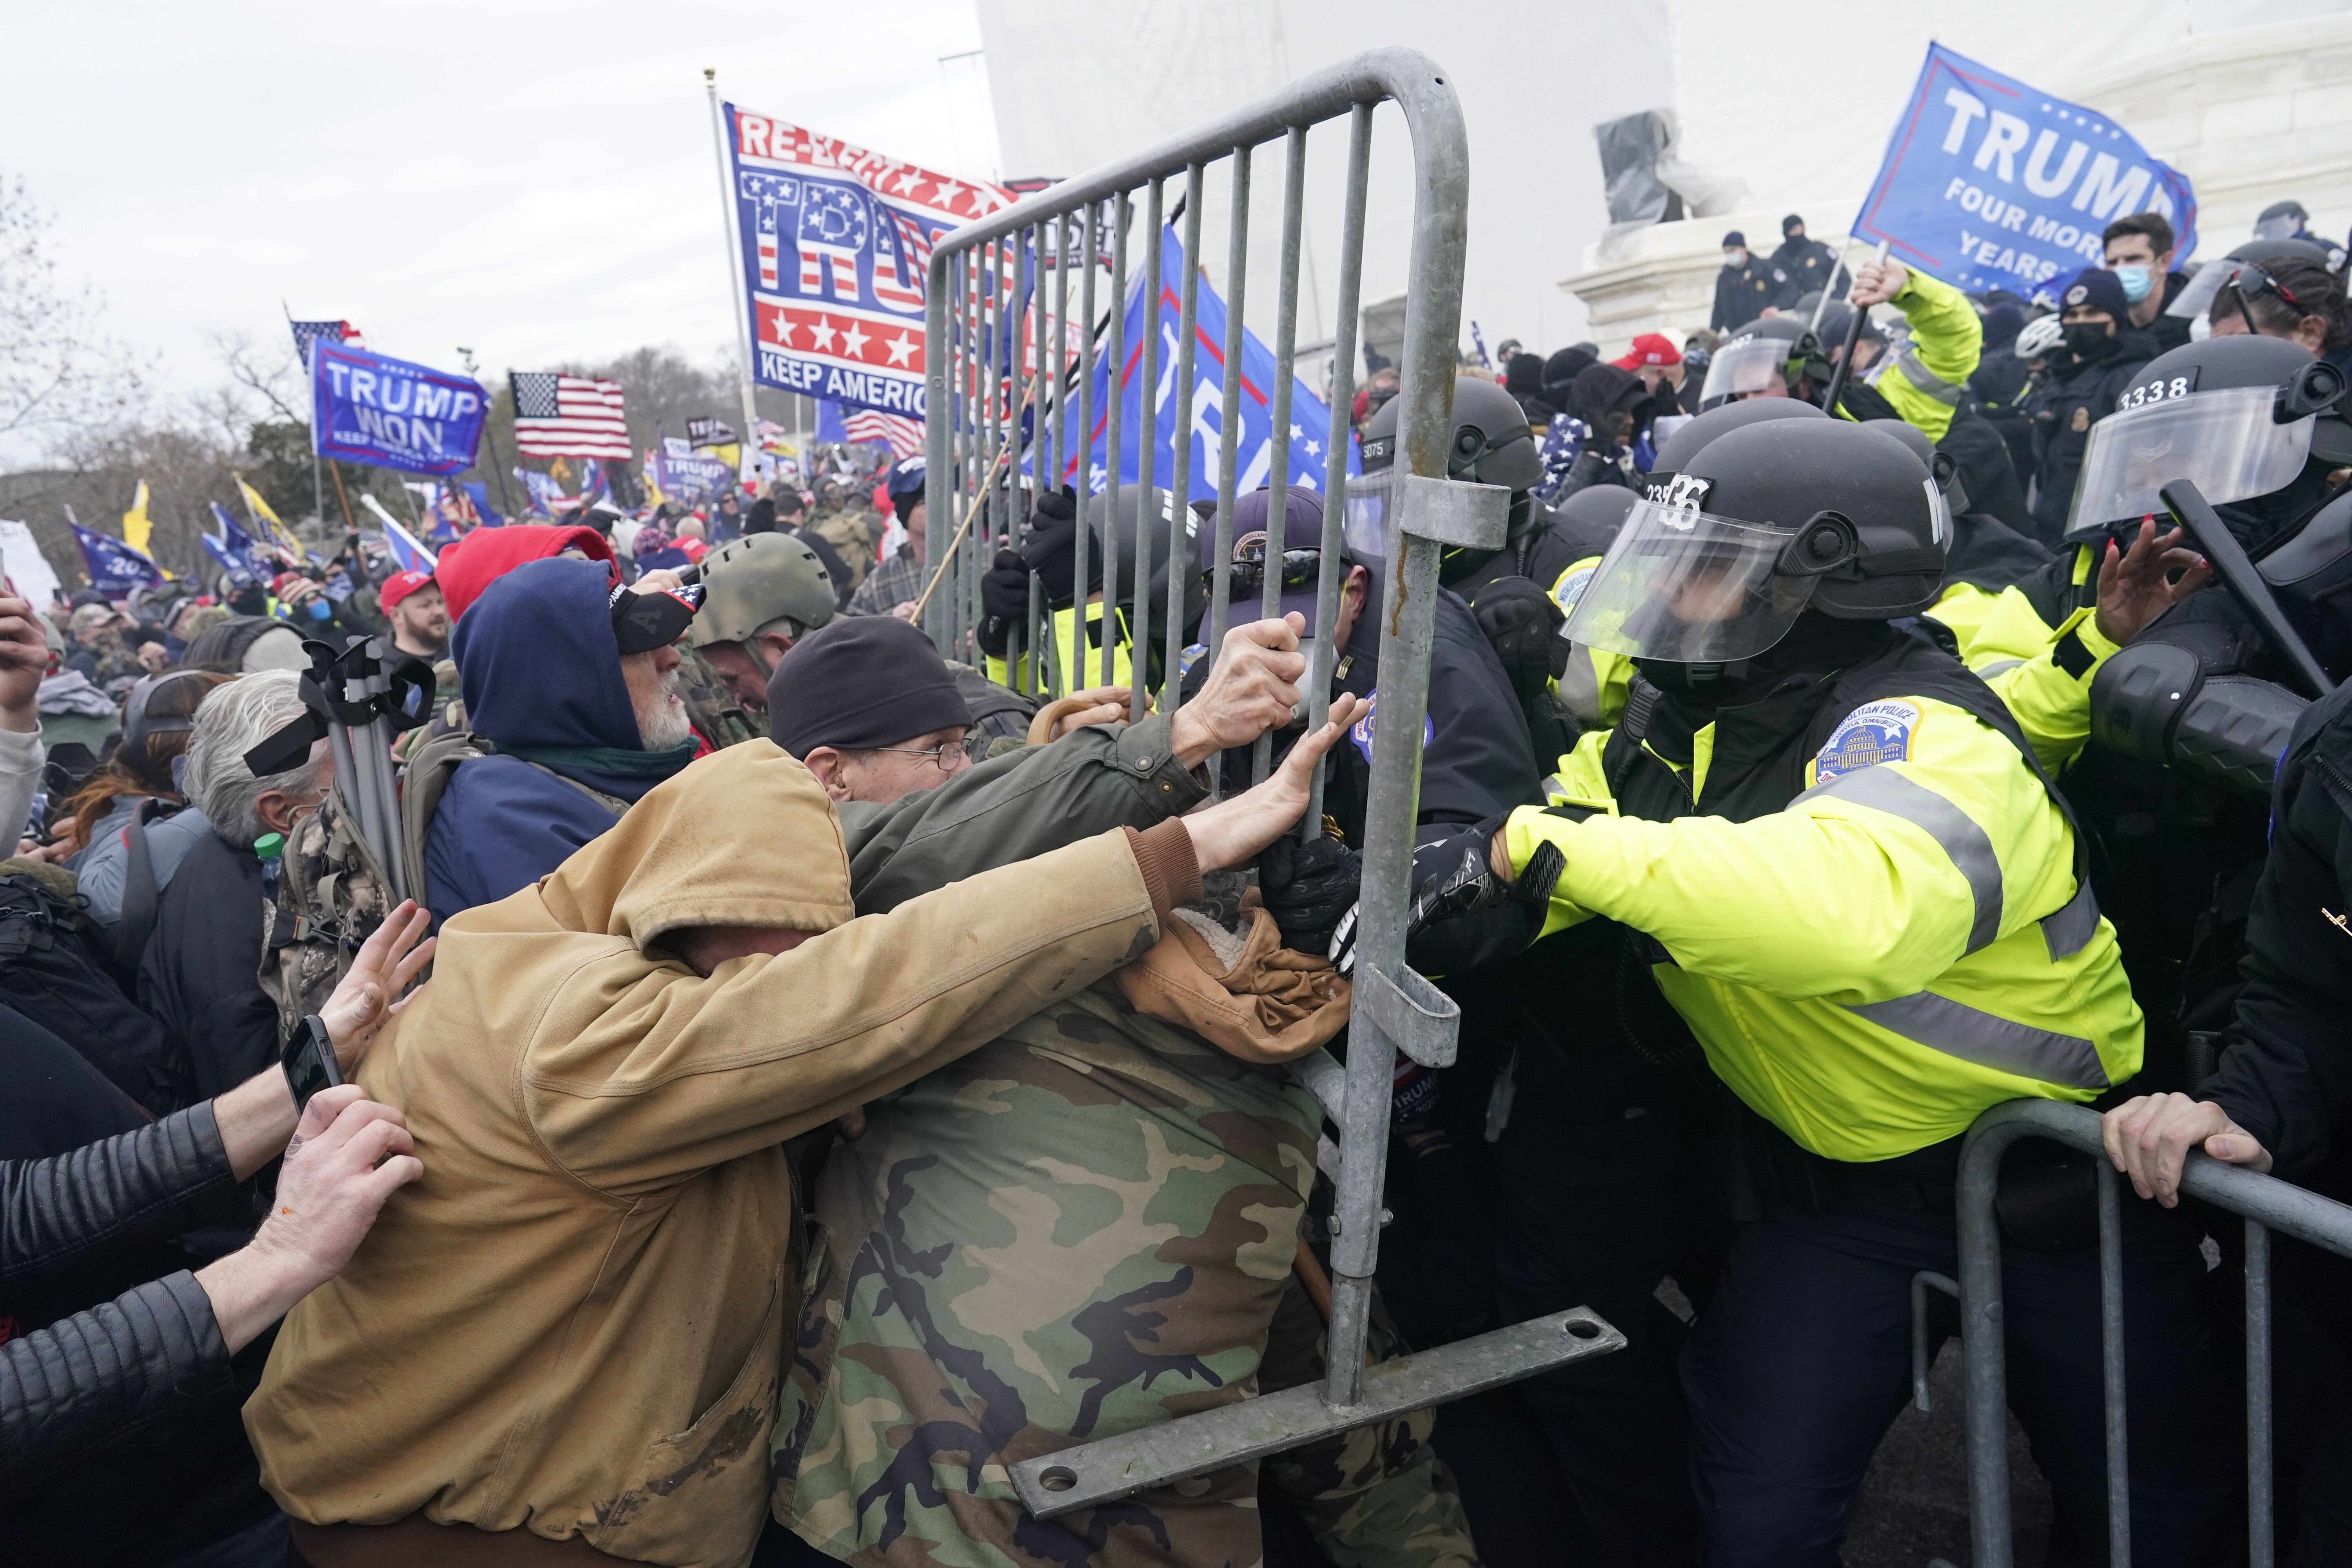 Pro-Trump insurrectionists attack the U.S. Capitol on Jan. 6, intending to stop the counting of electoral votes for Joe Biden